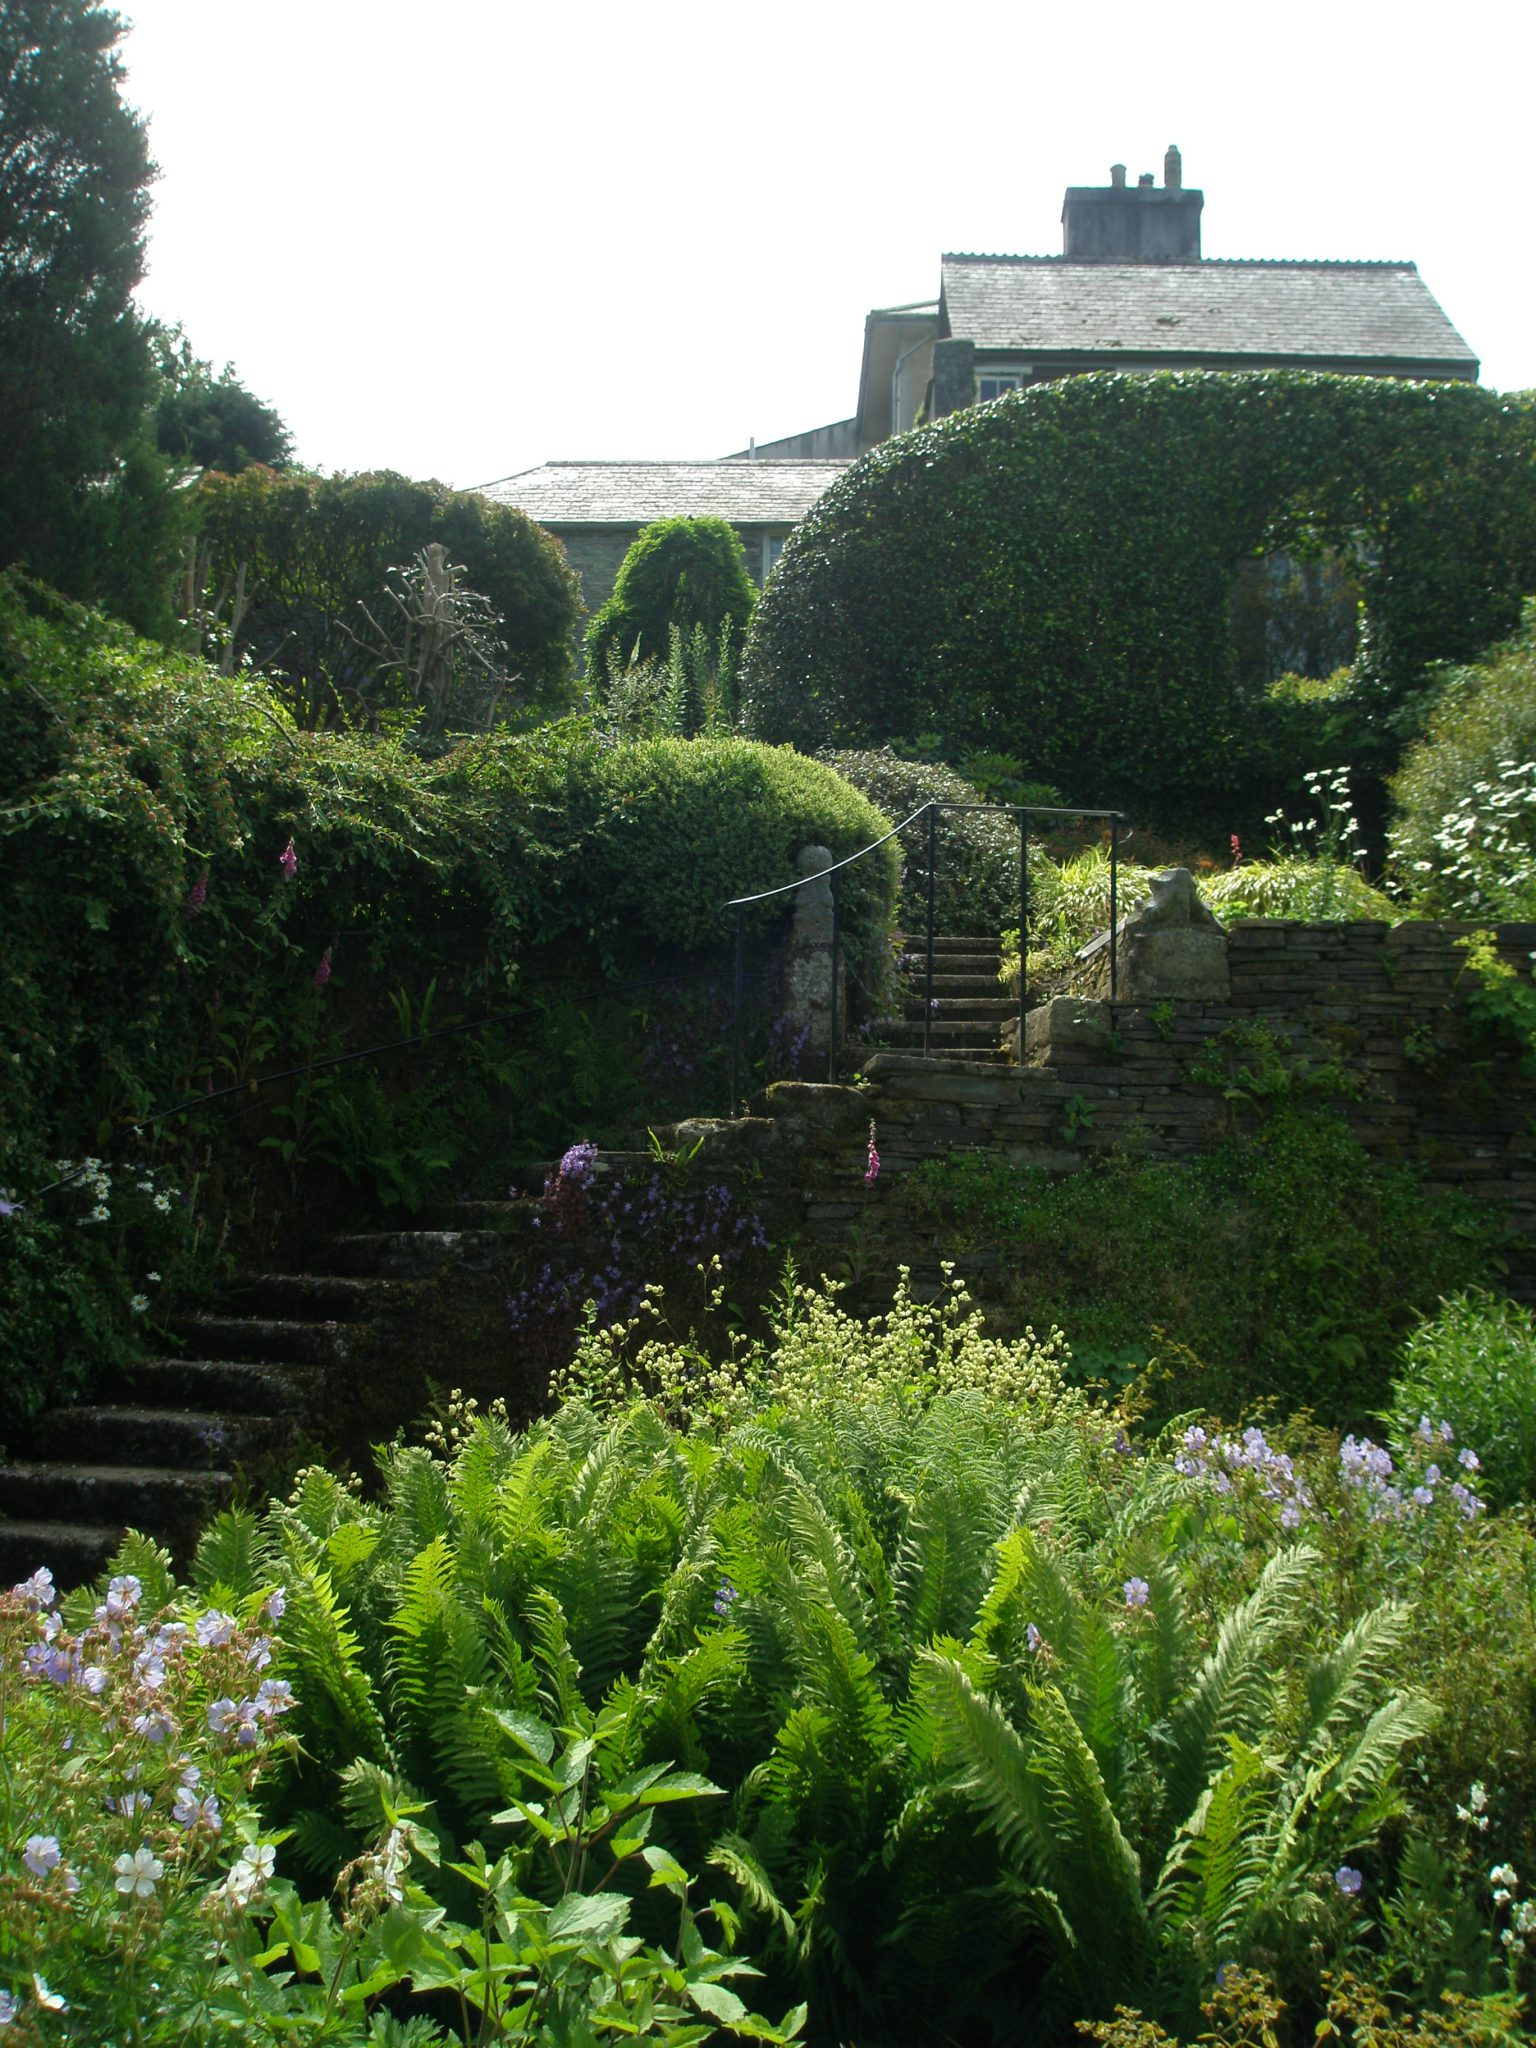 From the Tennis Court Lawn, Tom's Steps lead up the the Camellia Walk, and to the House.